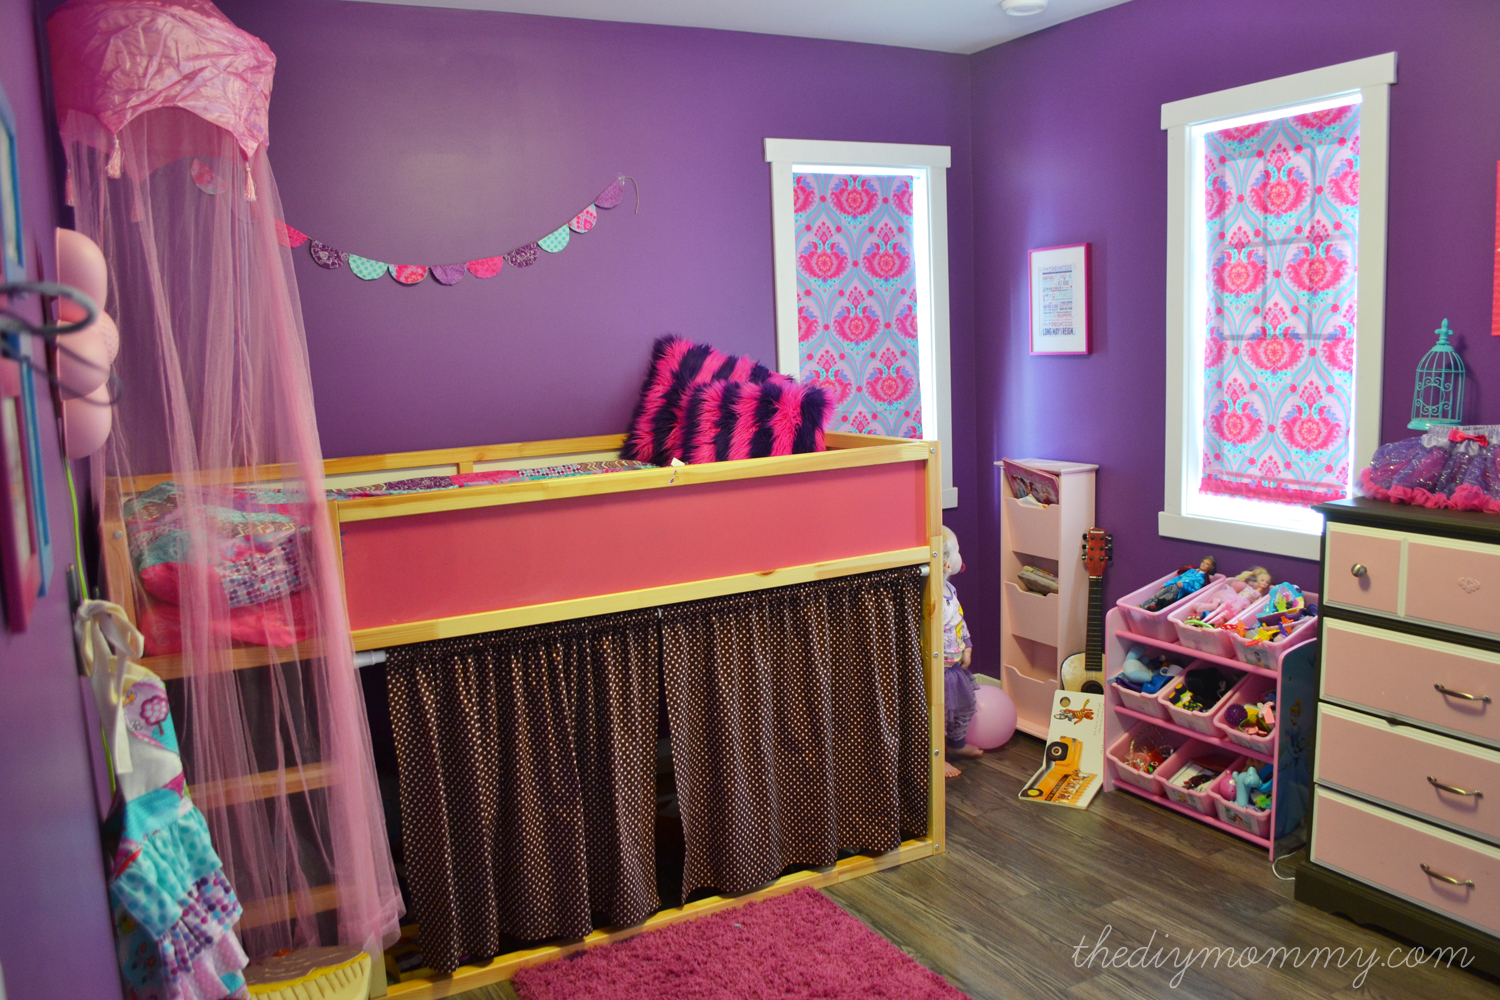 A Pink White Gold Shabby Chic Glam Girls Bedroom Reveal Little C S Room Makeover For The Orc